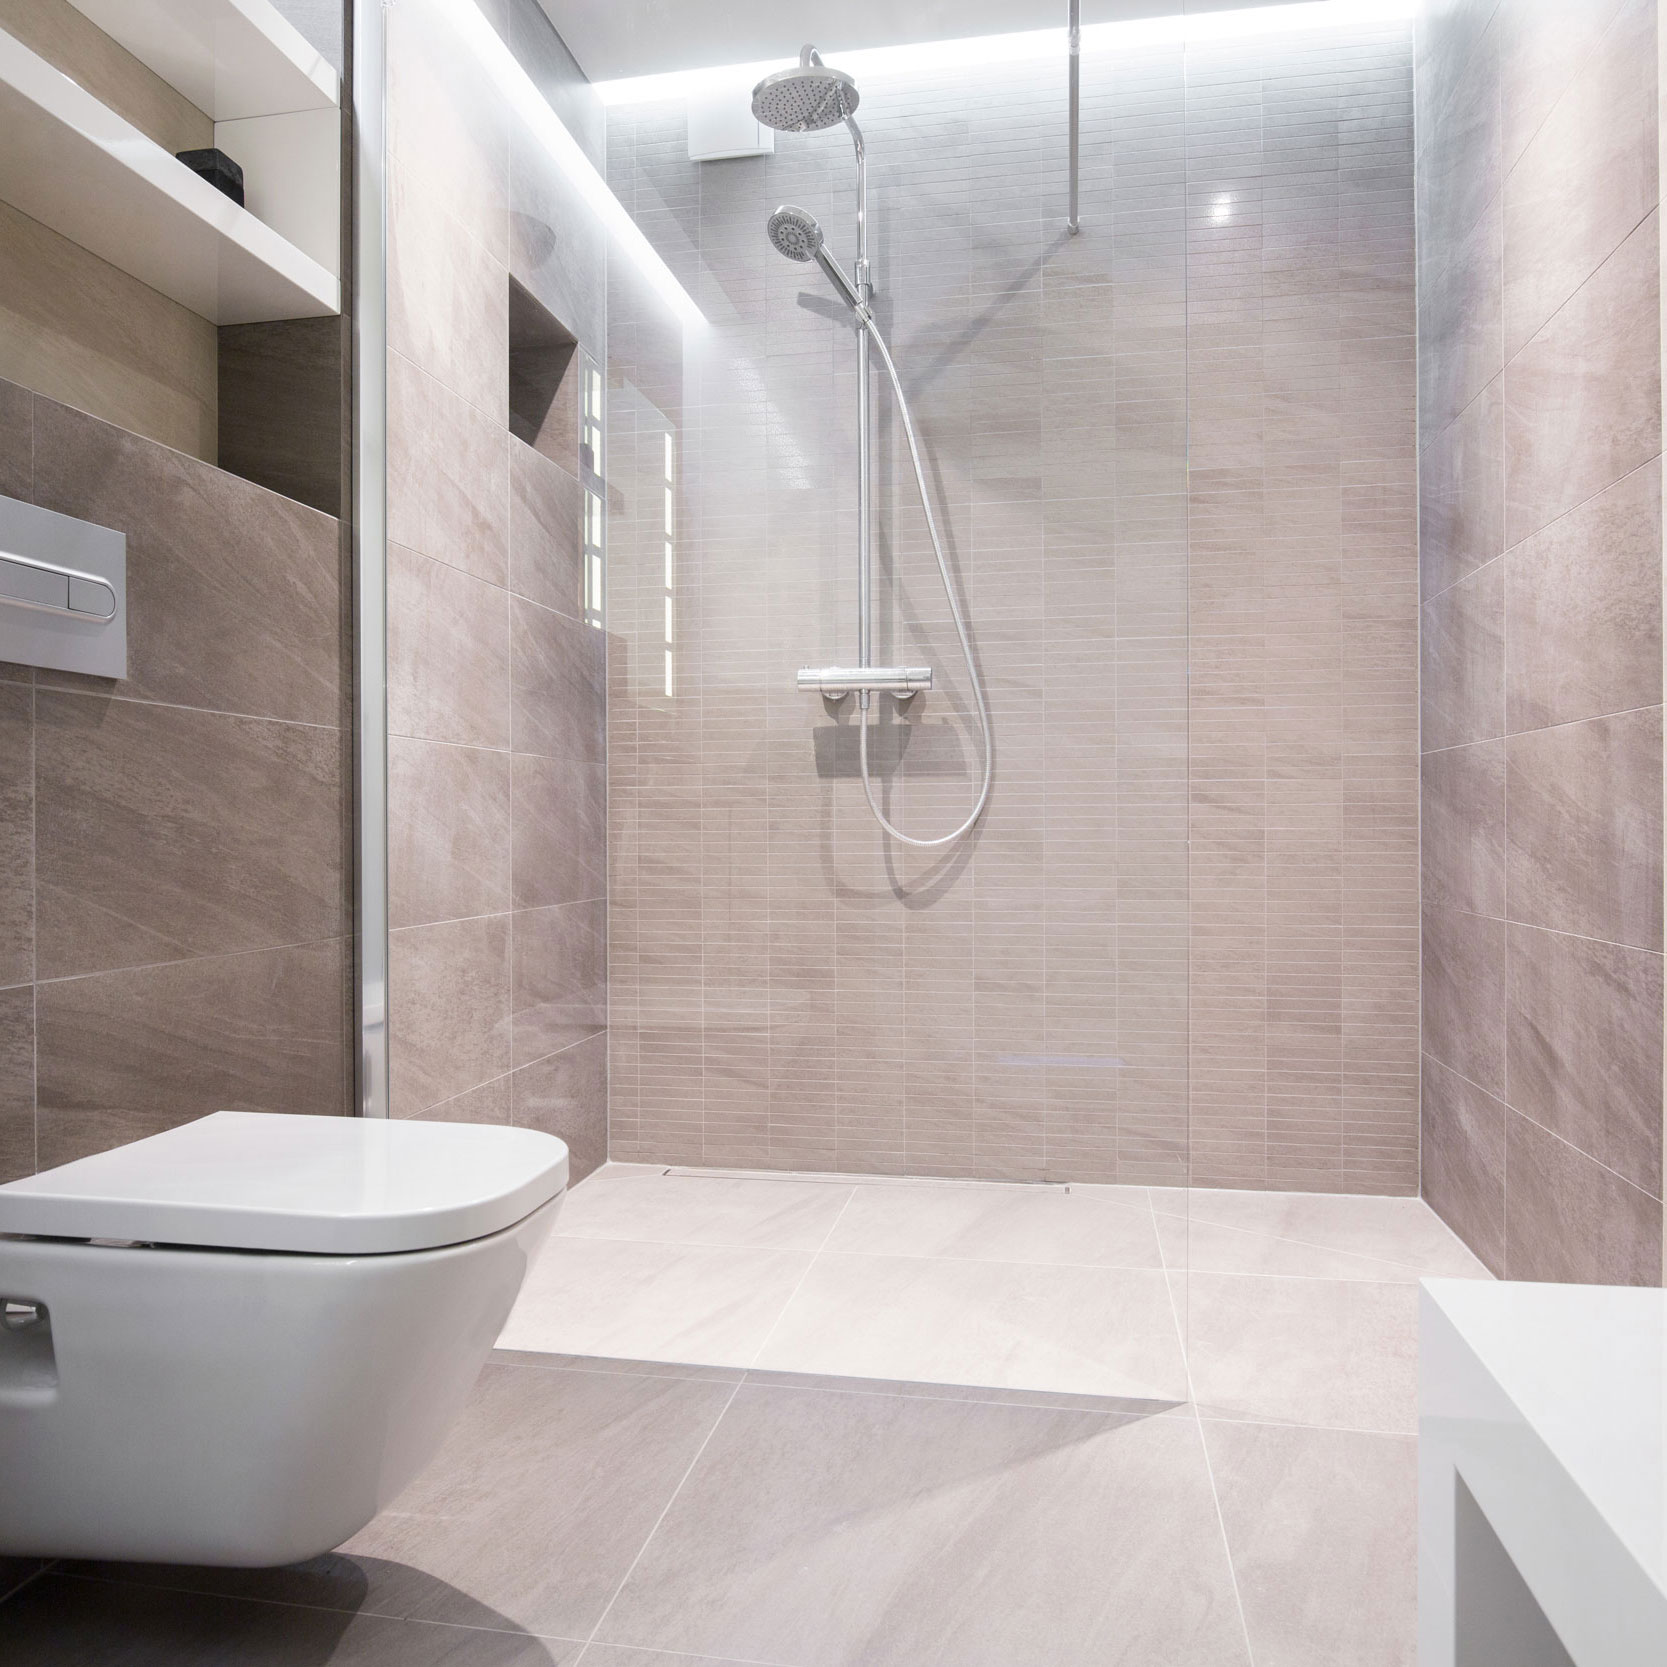 Ideas? - • Mobility bathrooms are fantastic additions to homes as they give individuals the opportunity to relax and de-stress whilst knowing that they are completely safe.• Mobility bathrooms can be designed and tailored not only to your exact needs but also to your exact style which means the possibilities are endless and allows you to create the perfect space and environment, just for you.• At Signature Bathrooms we understand how difficult it can be when choosing a mobility bathroom which will meet your exact requirements that is why we strive to ensure that we make the process as smooth as possible. Our experts have years of experience installing mobility bathrooms so we can guide and advise on what we believe is the best equipment for your mobility bathroom based on your requirements.